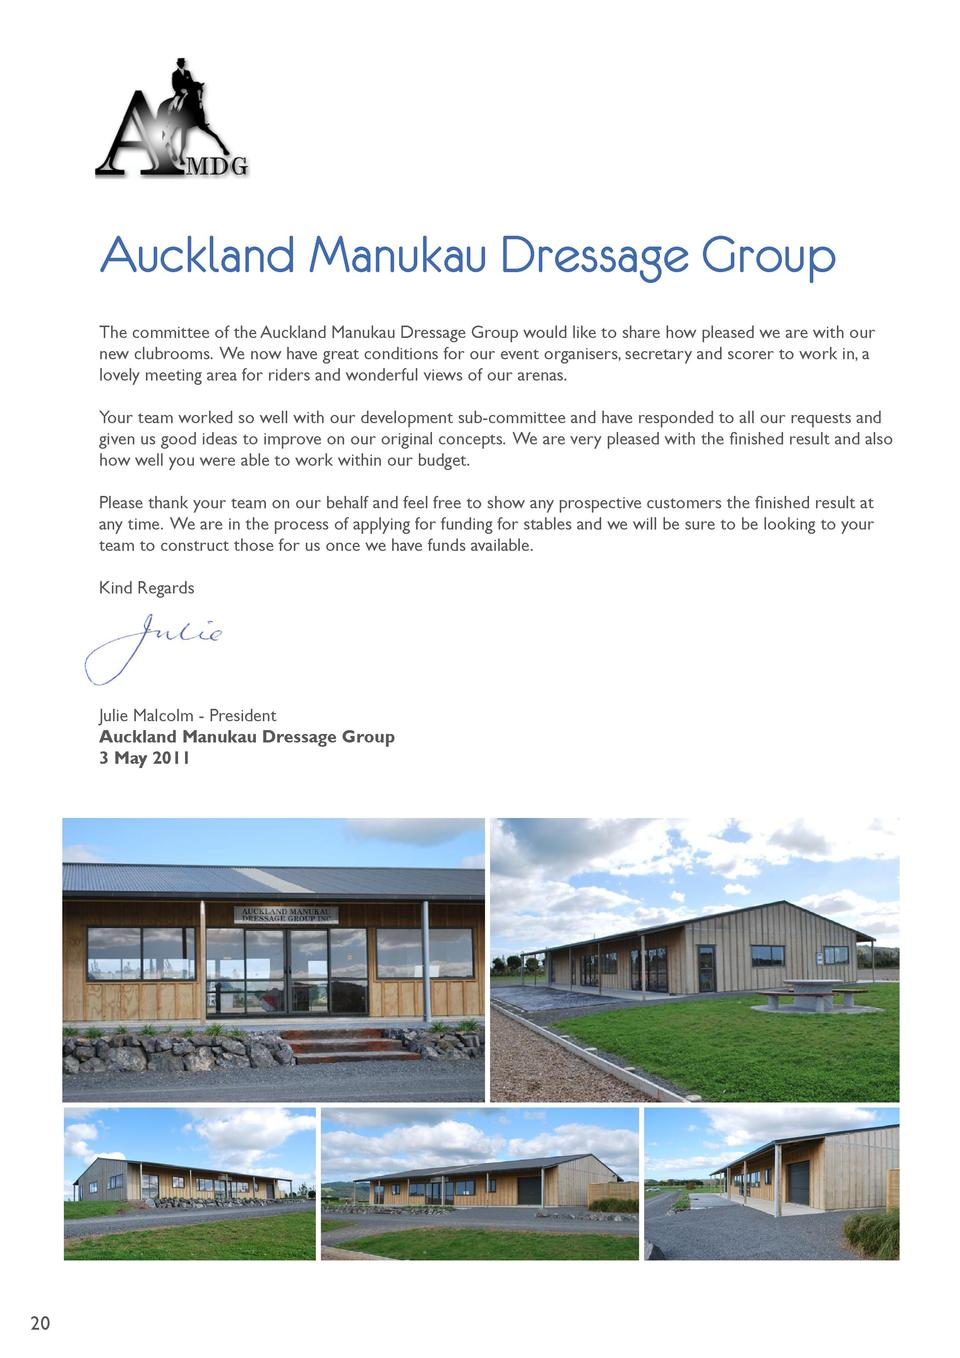 Auckland Manukau Dressage Group The committee of the Auckland Manukau Dressage Group would like to share how pleased we ar...